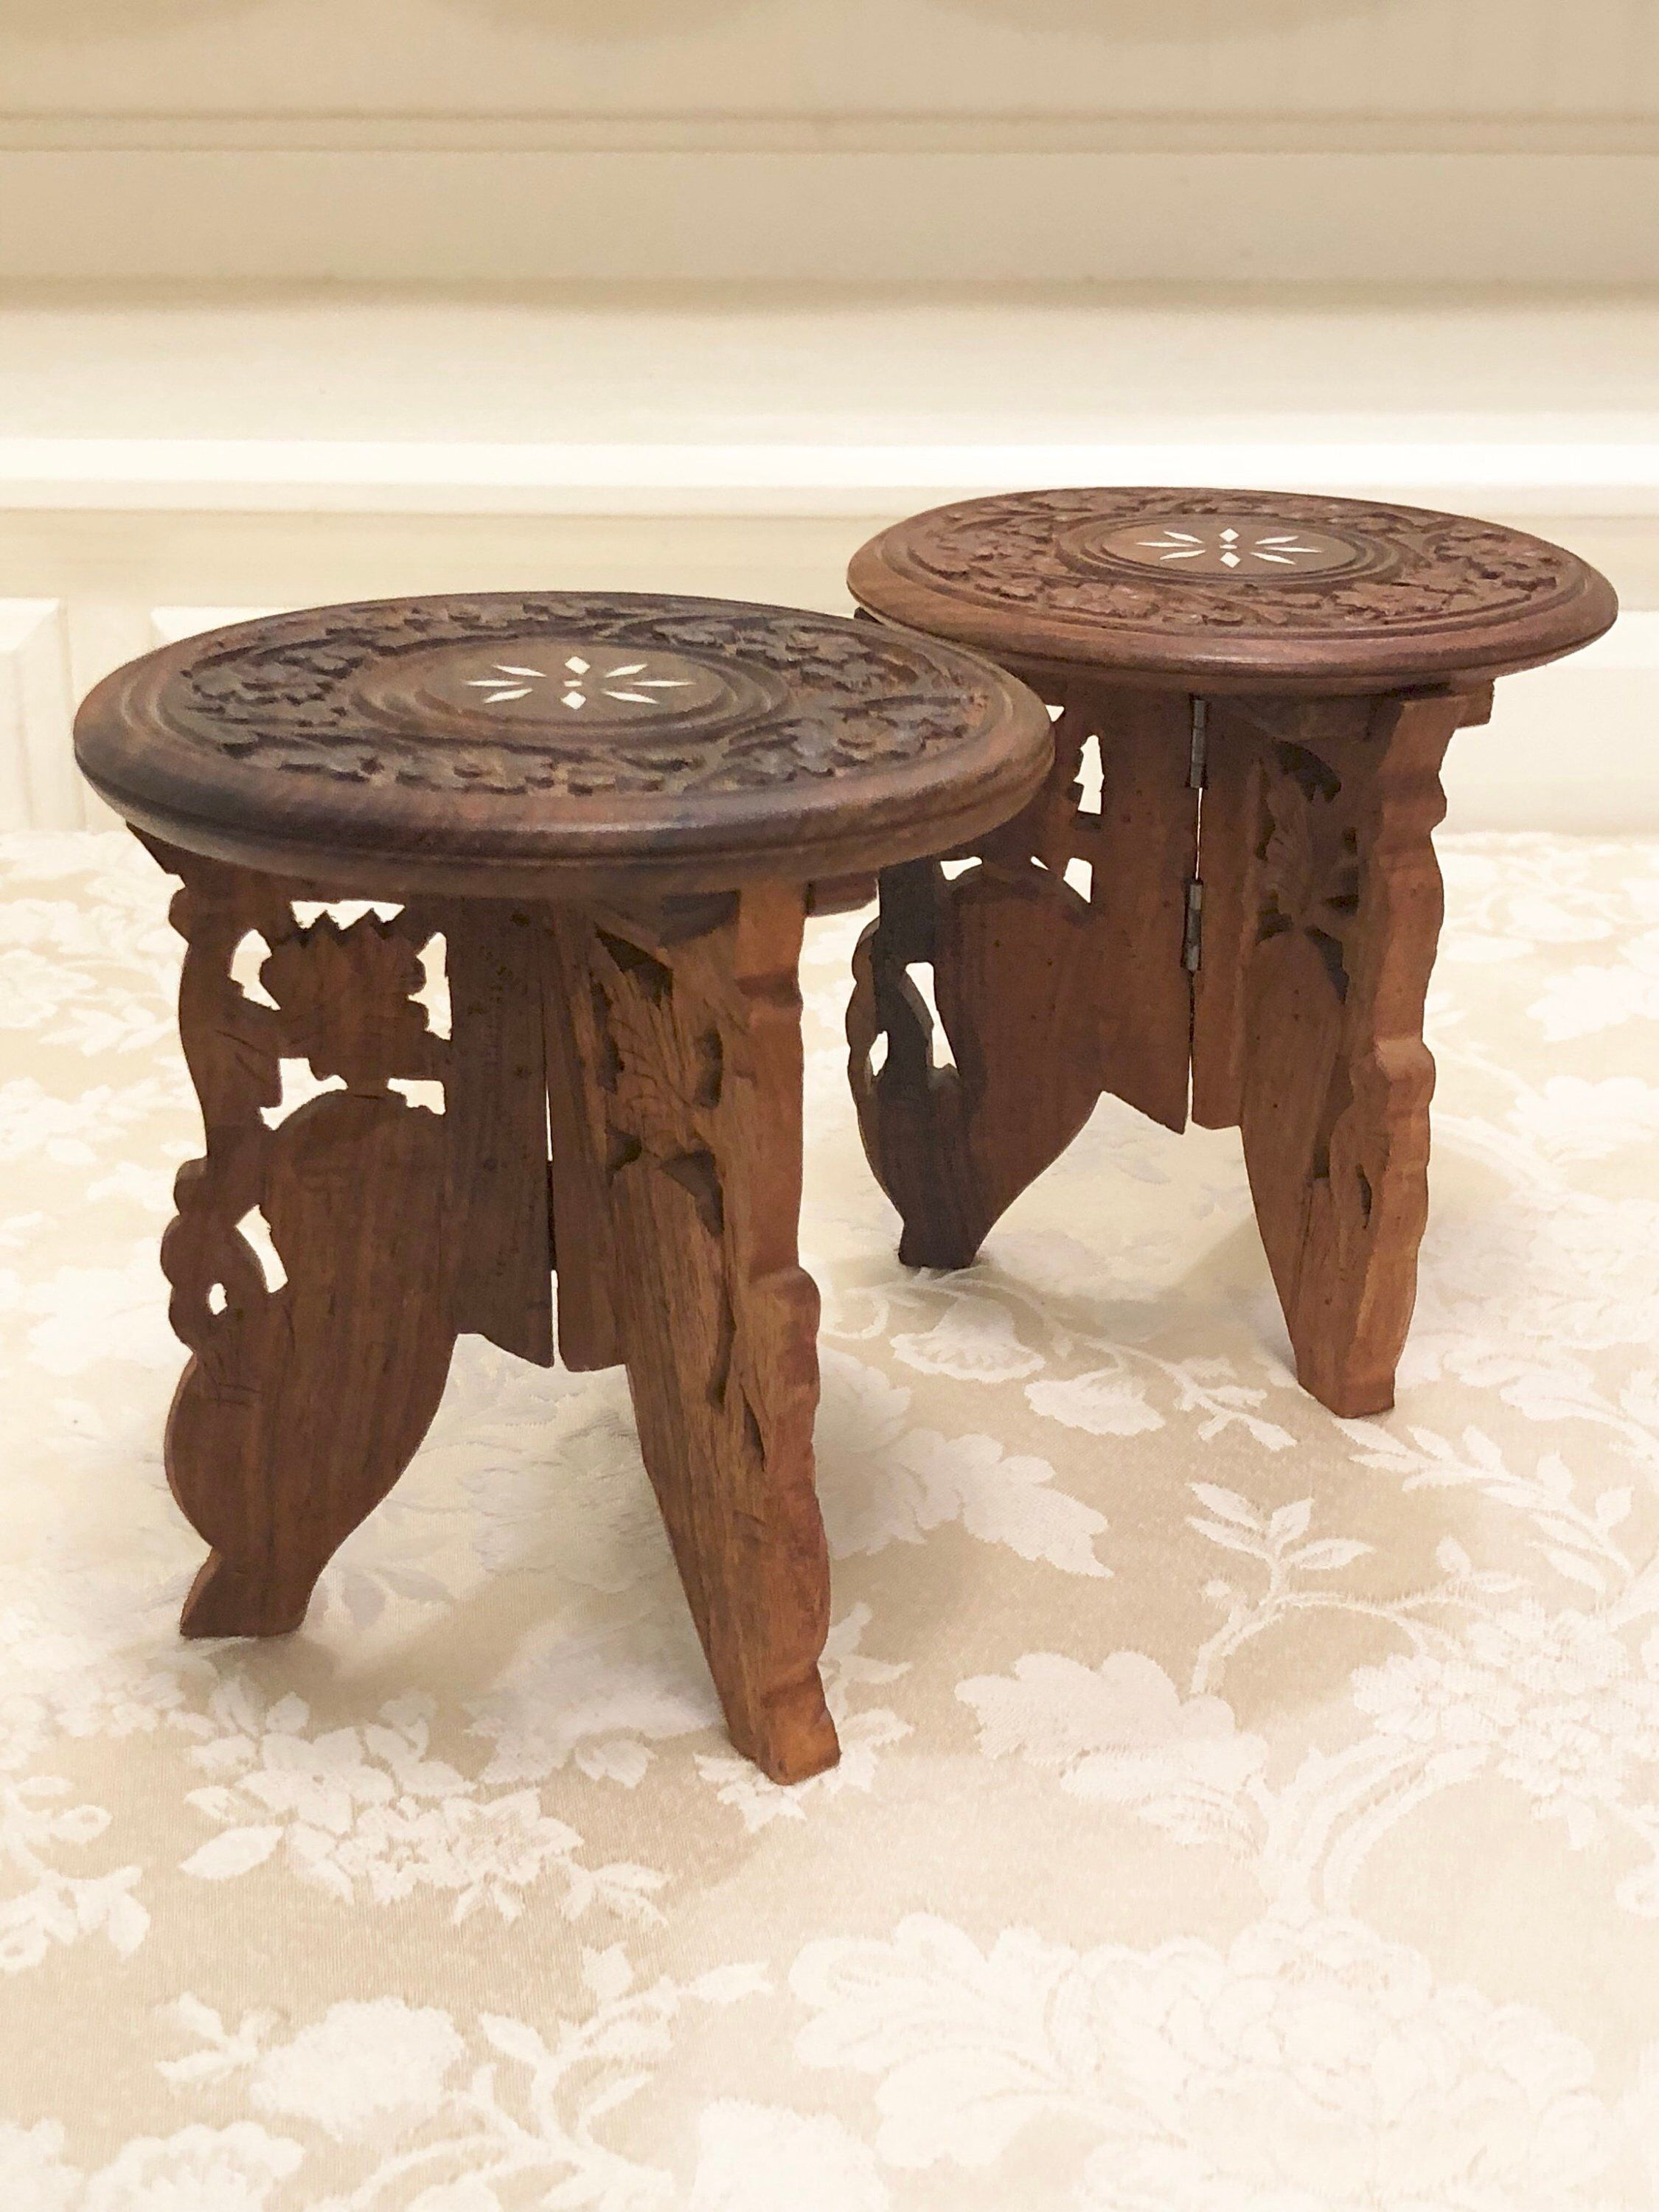 elegant carved wooden display candle holder small accent table shelf mini excited share this item from etsy yoga decor used patio furniture wood legs oak chairs long bar height